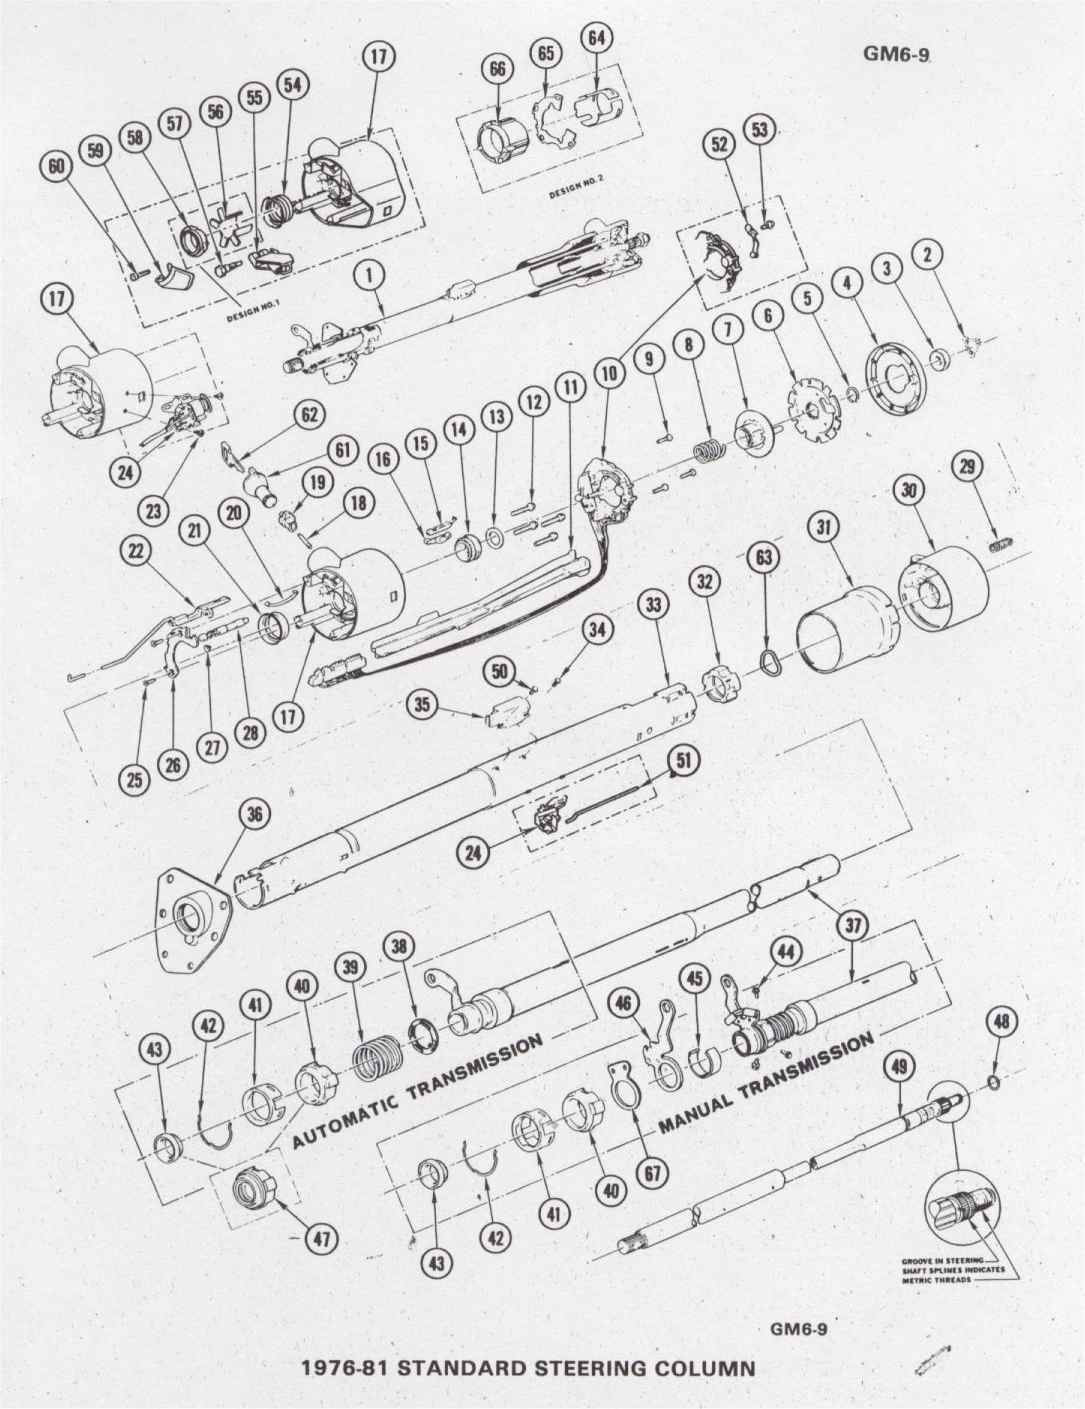 1972 Chevy Steering Column Parts Diagram House Wiring Diagram 1985 Corvette  Steering Column Diagram C4 Corvette Steering Column Diagram